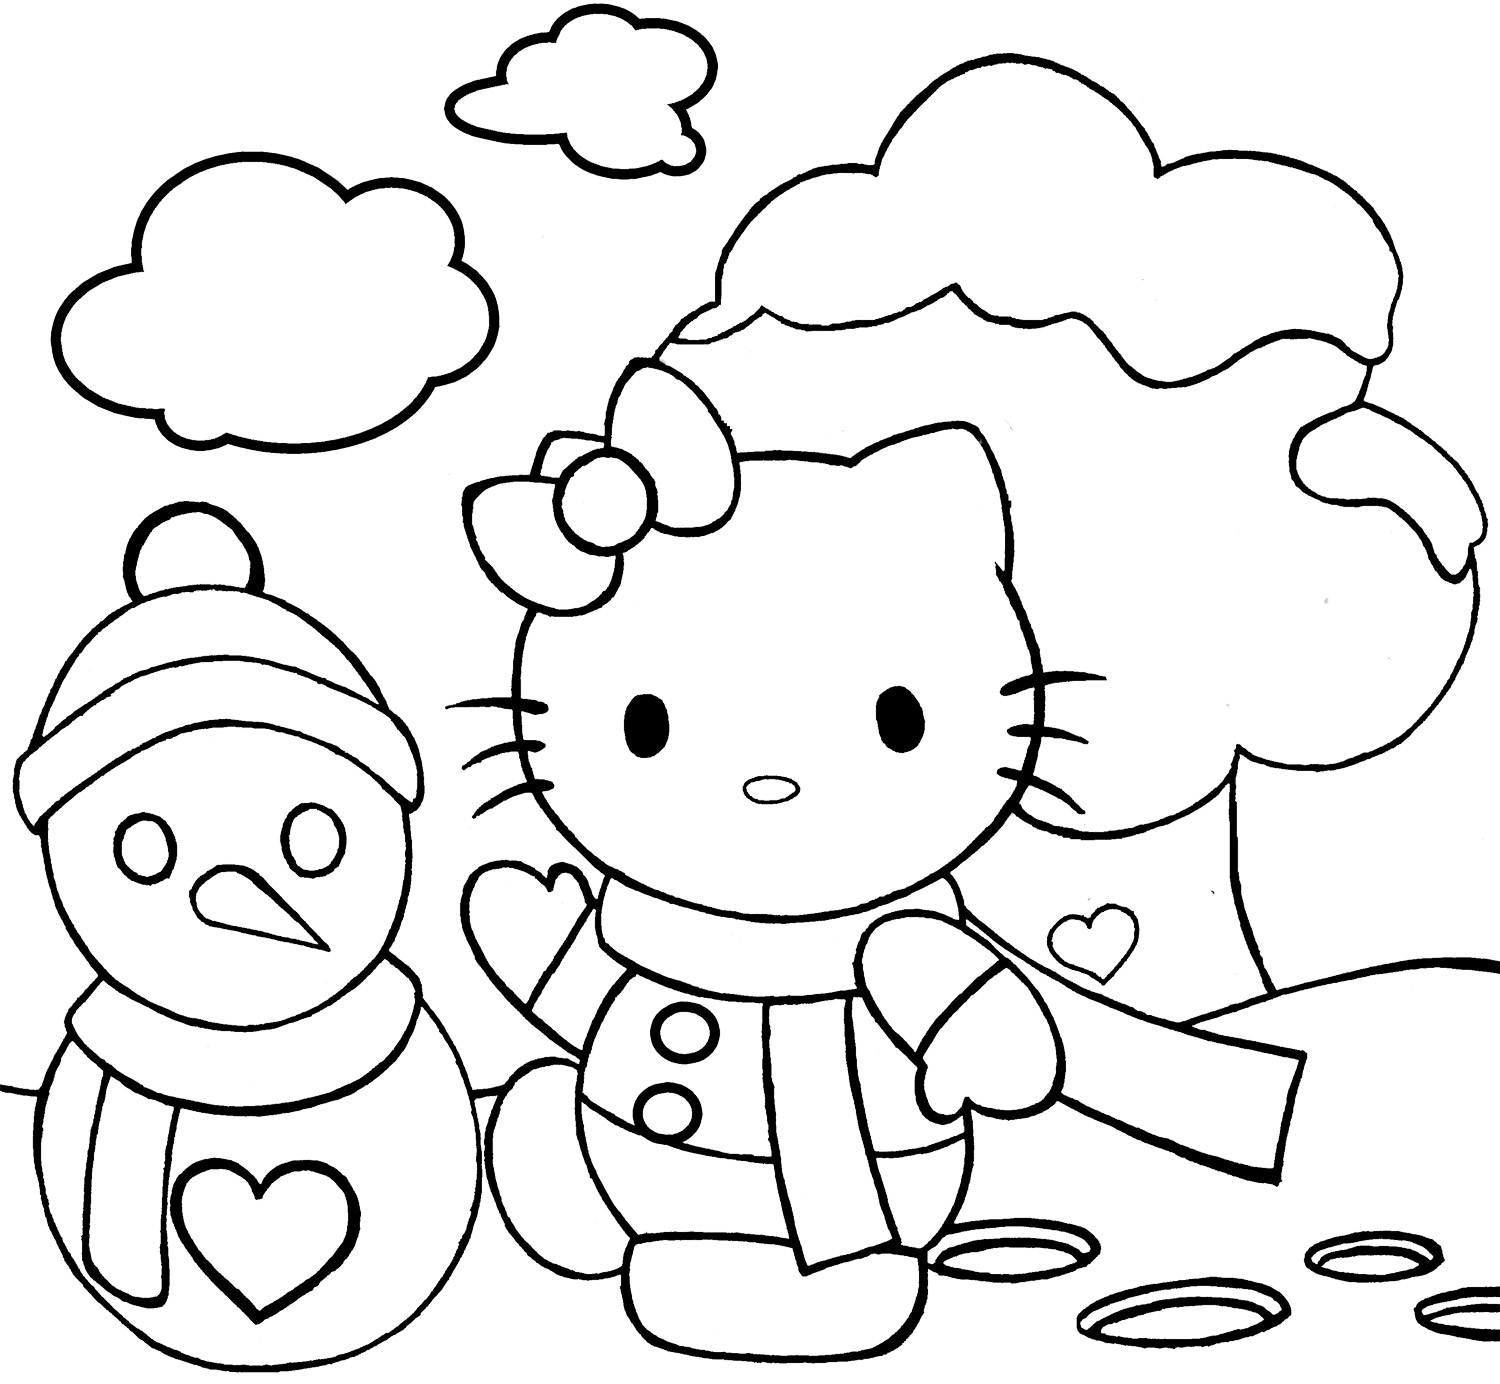 hello kitty christmas colouring pages hello kitty christmas coloring pages learn to coloring pages hello colouring christmas kitty